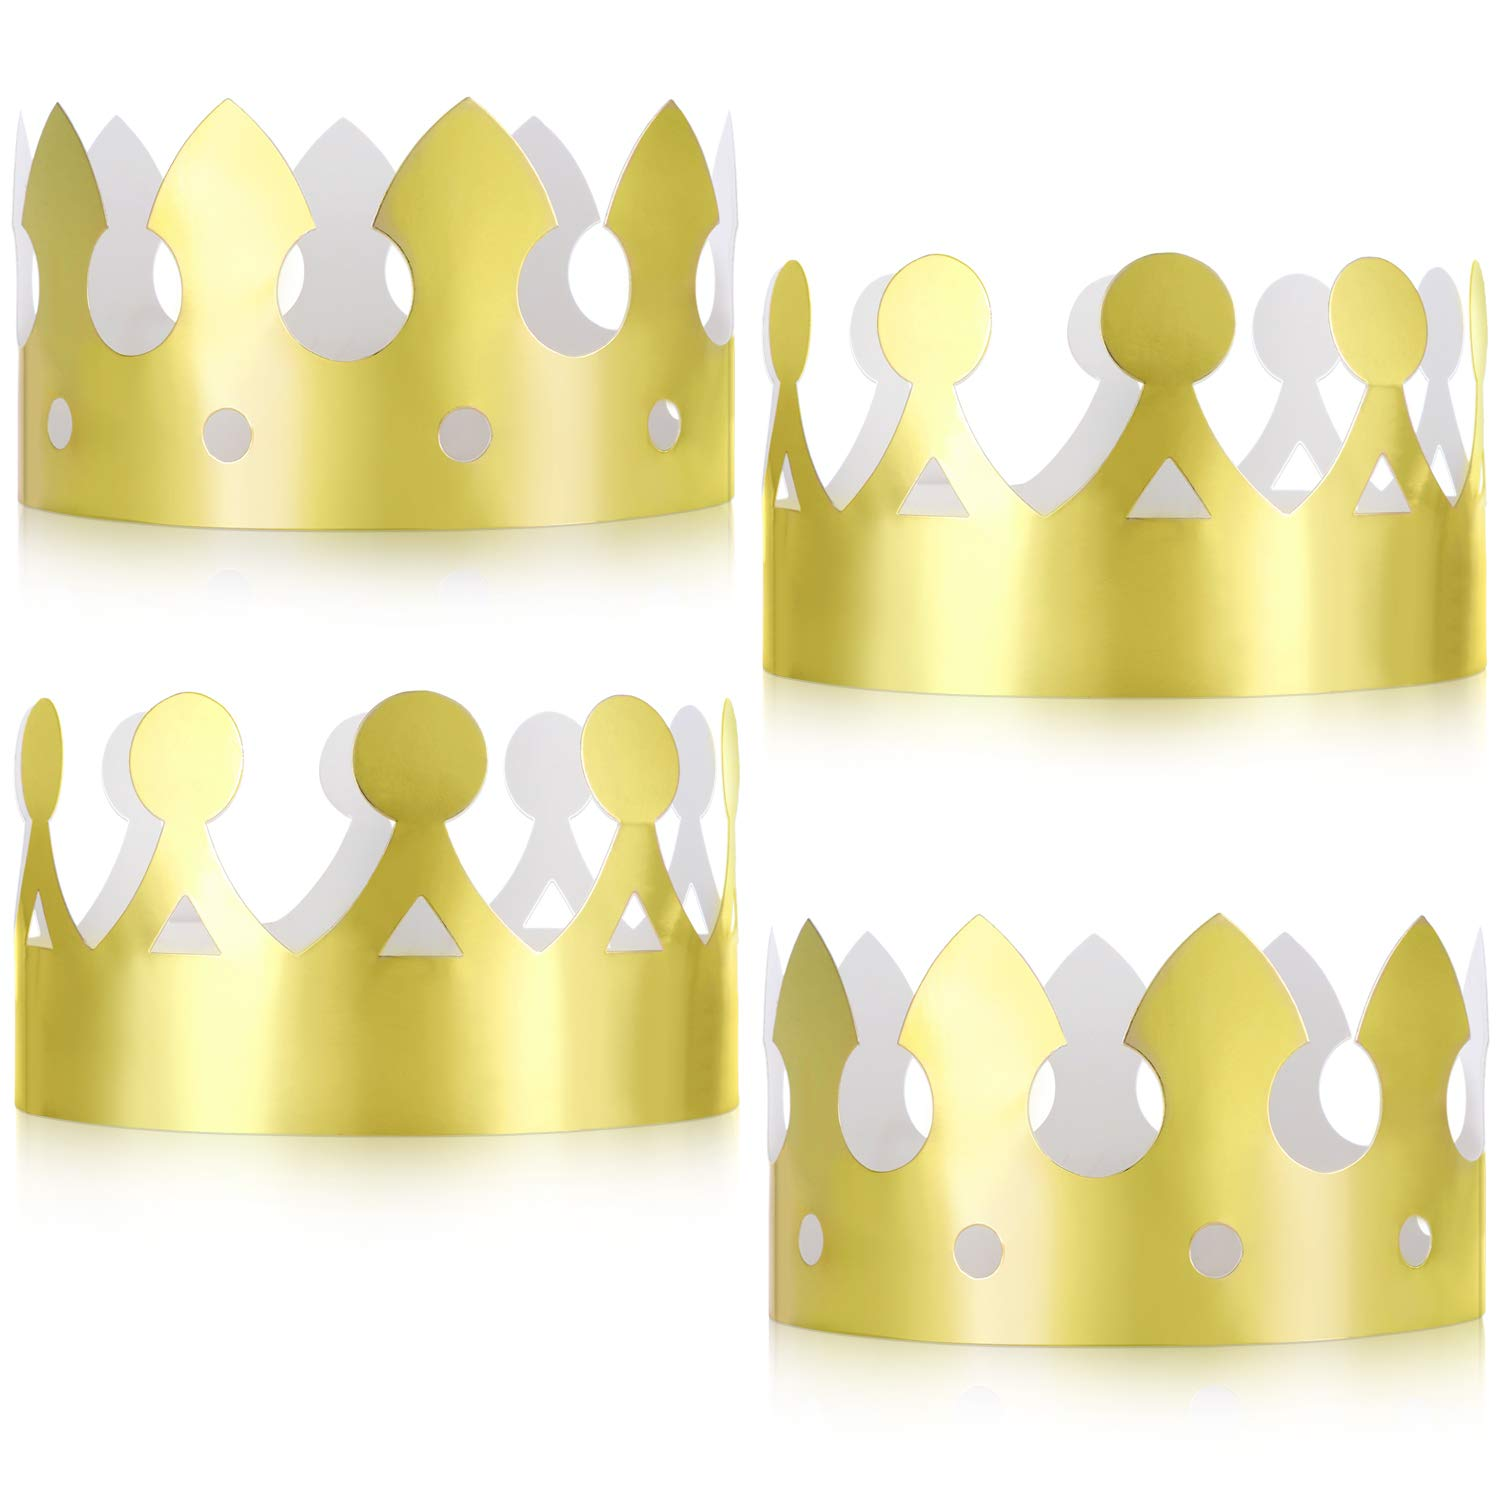 Jovitec 24 Pieces Golden King Crowns Gold Foil Paper Party Crown Hat Cap  for Birthday Celebration Baby Shower Photo Props.